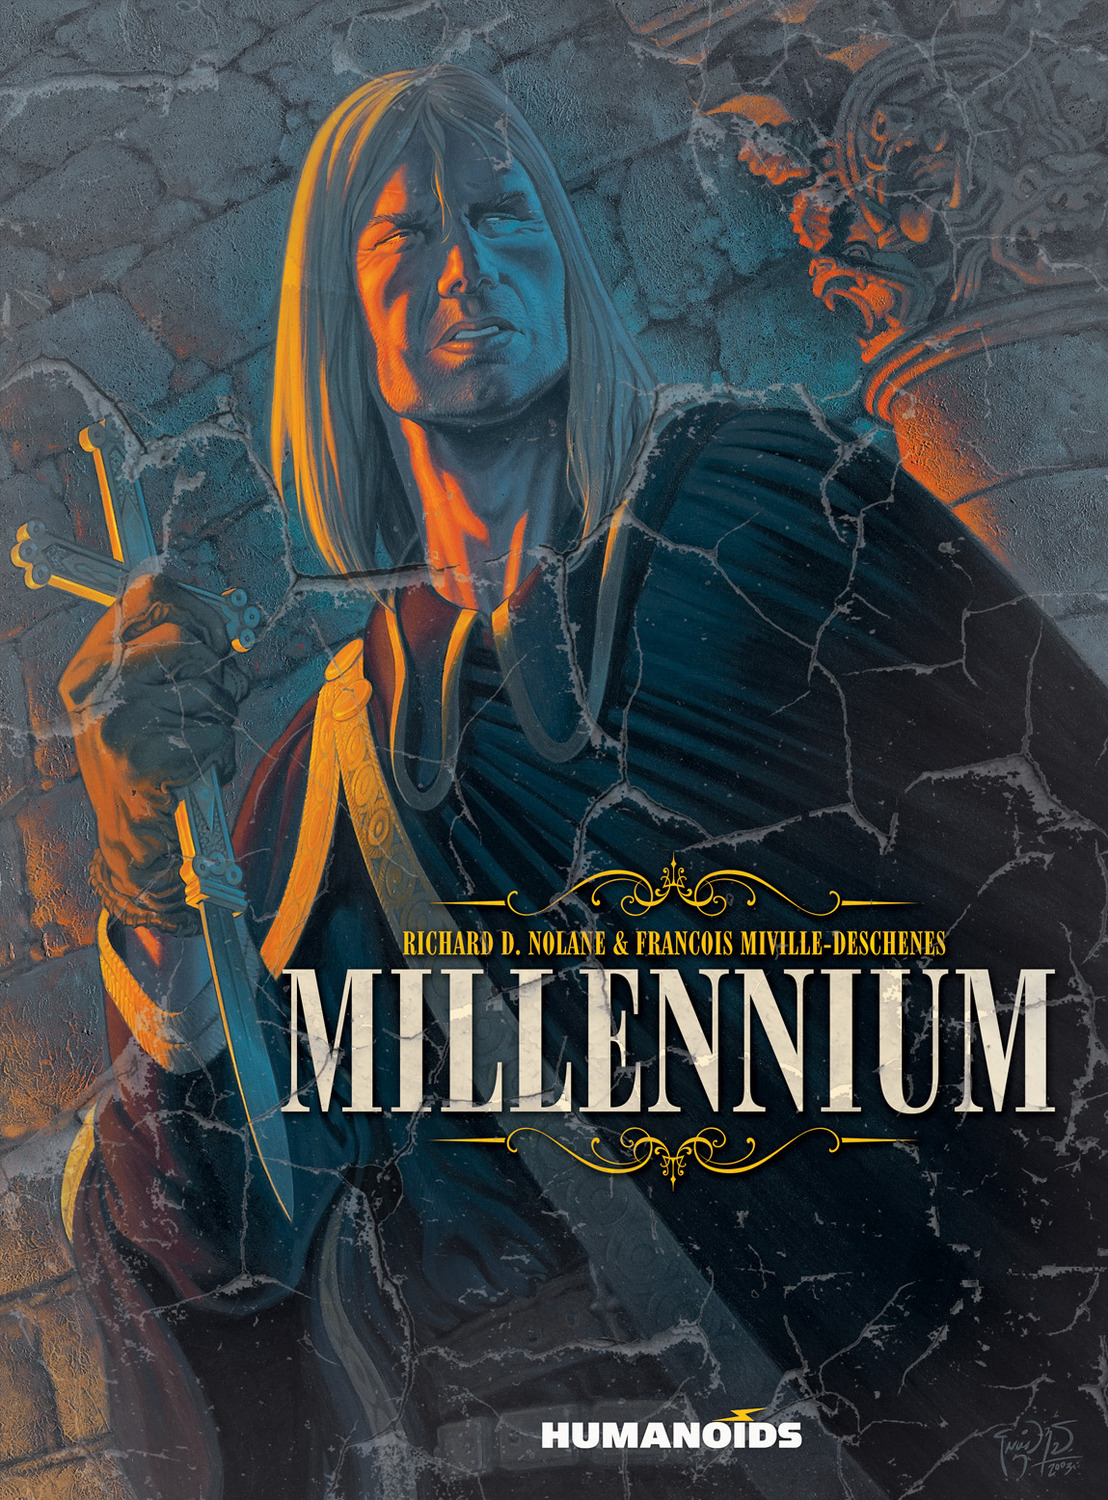 Millennium - Hardcover Trade